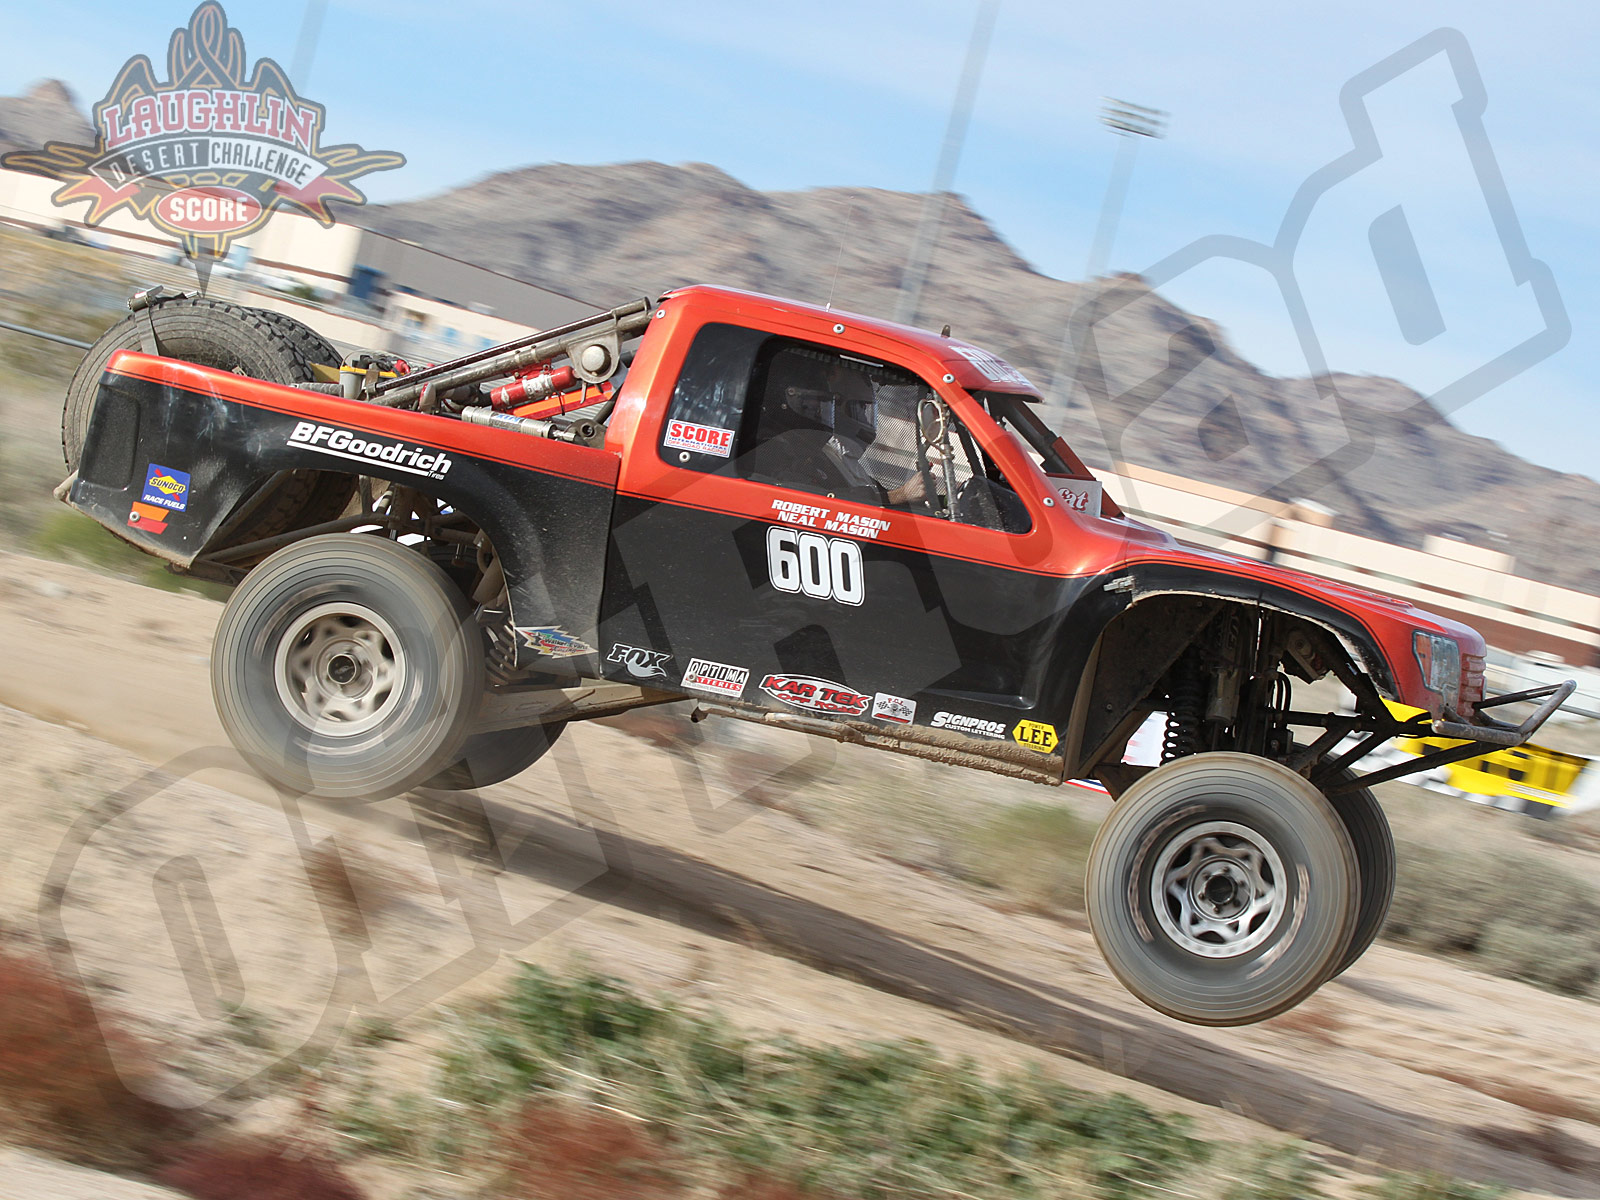 012011or 6629+2011 score laughlin desert challenge+truck classes